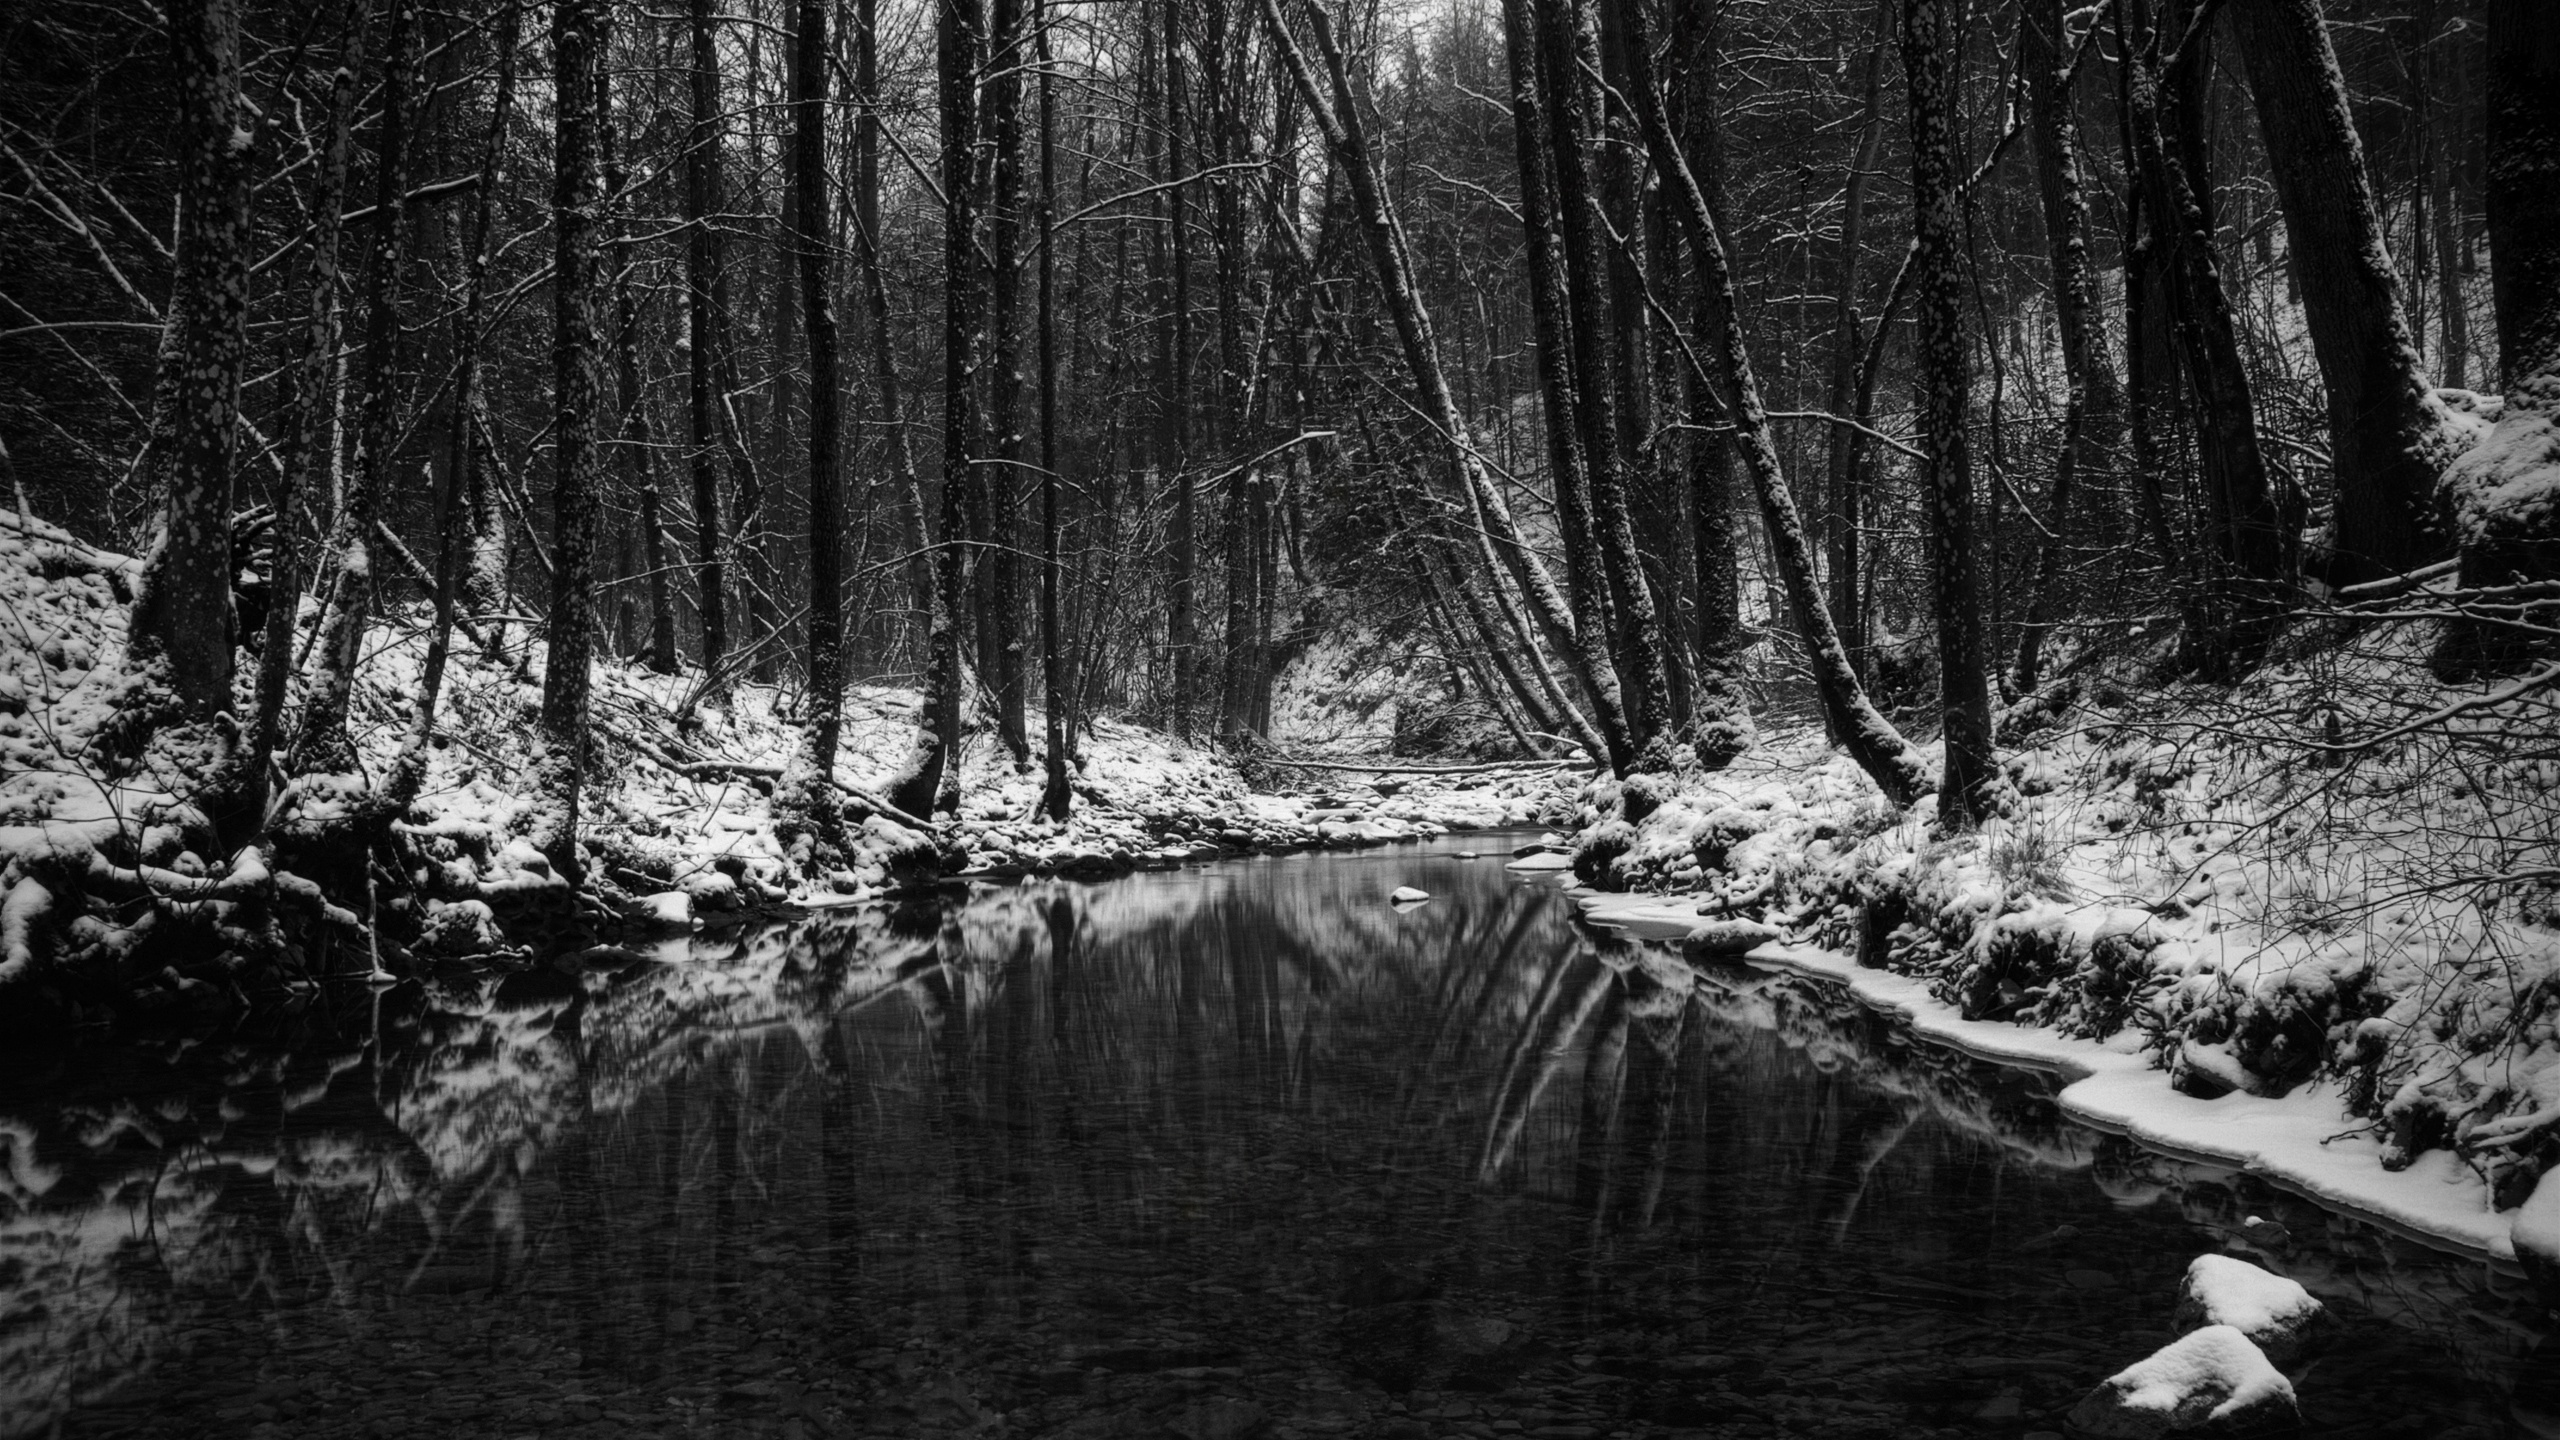 Black And White Nature HD Wallpaper For Tab